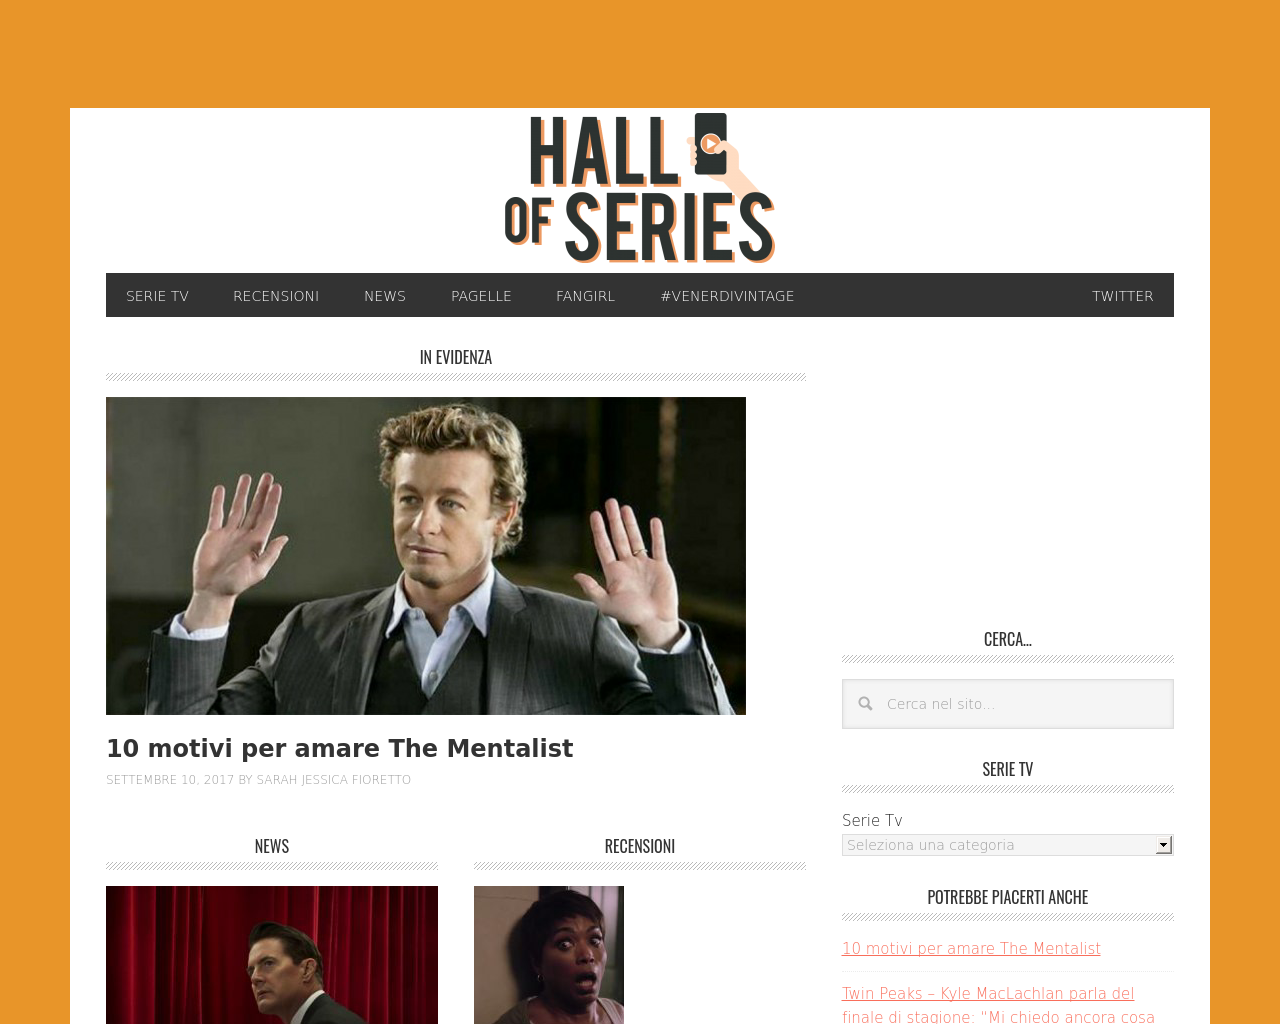 Hall-of-Series-Advertising-Reviews-Pricing